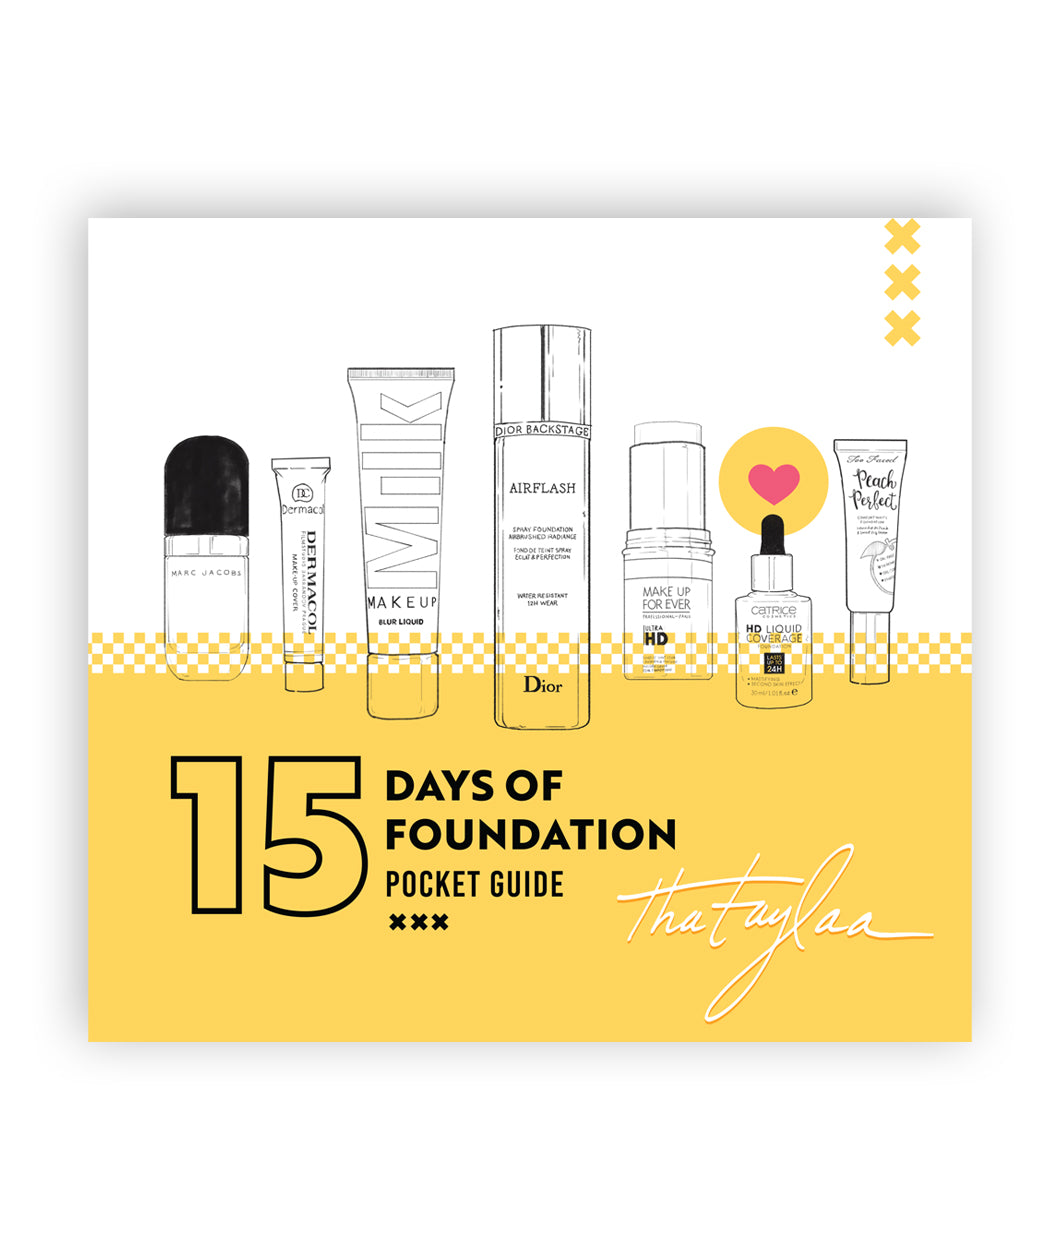 15 Days of Foundation Pocket Guide Book